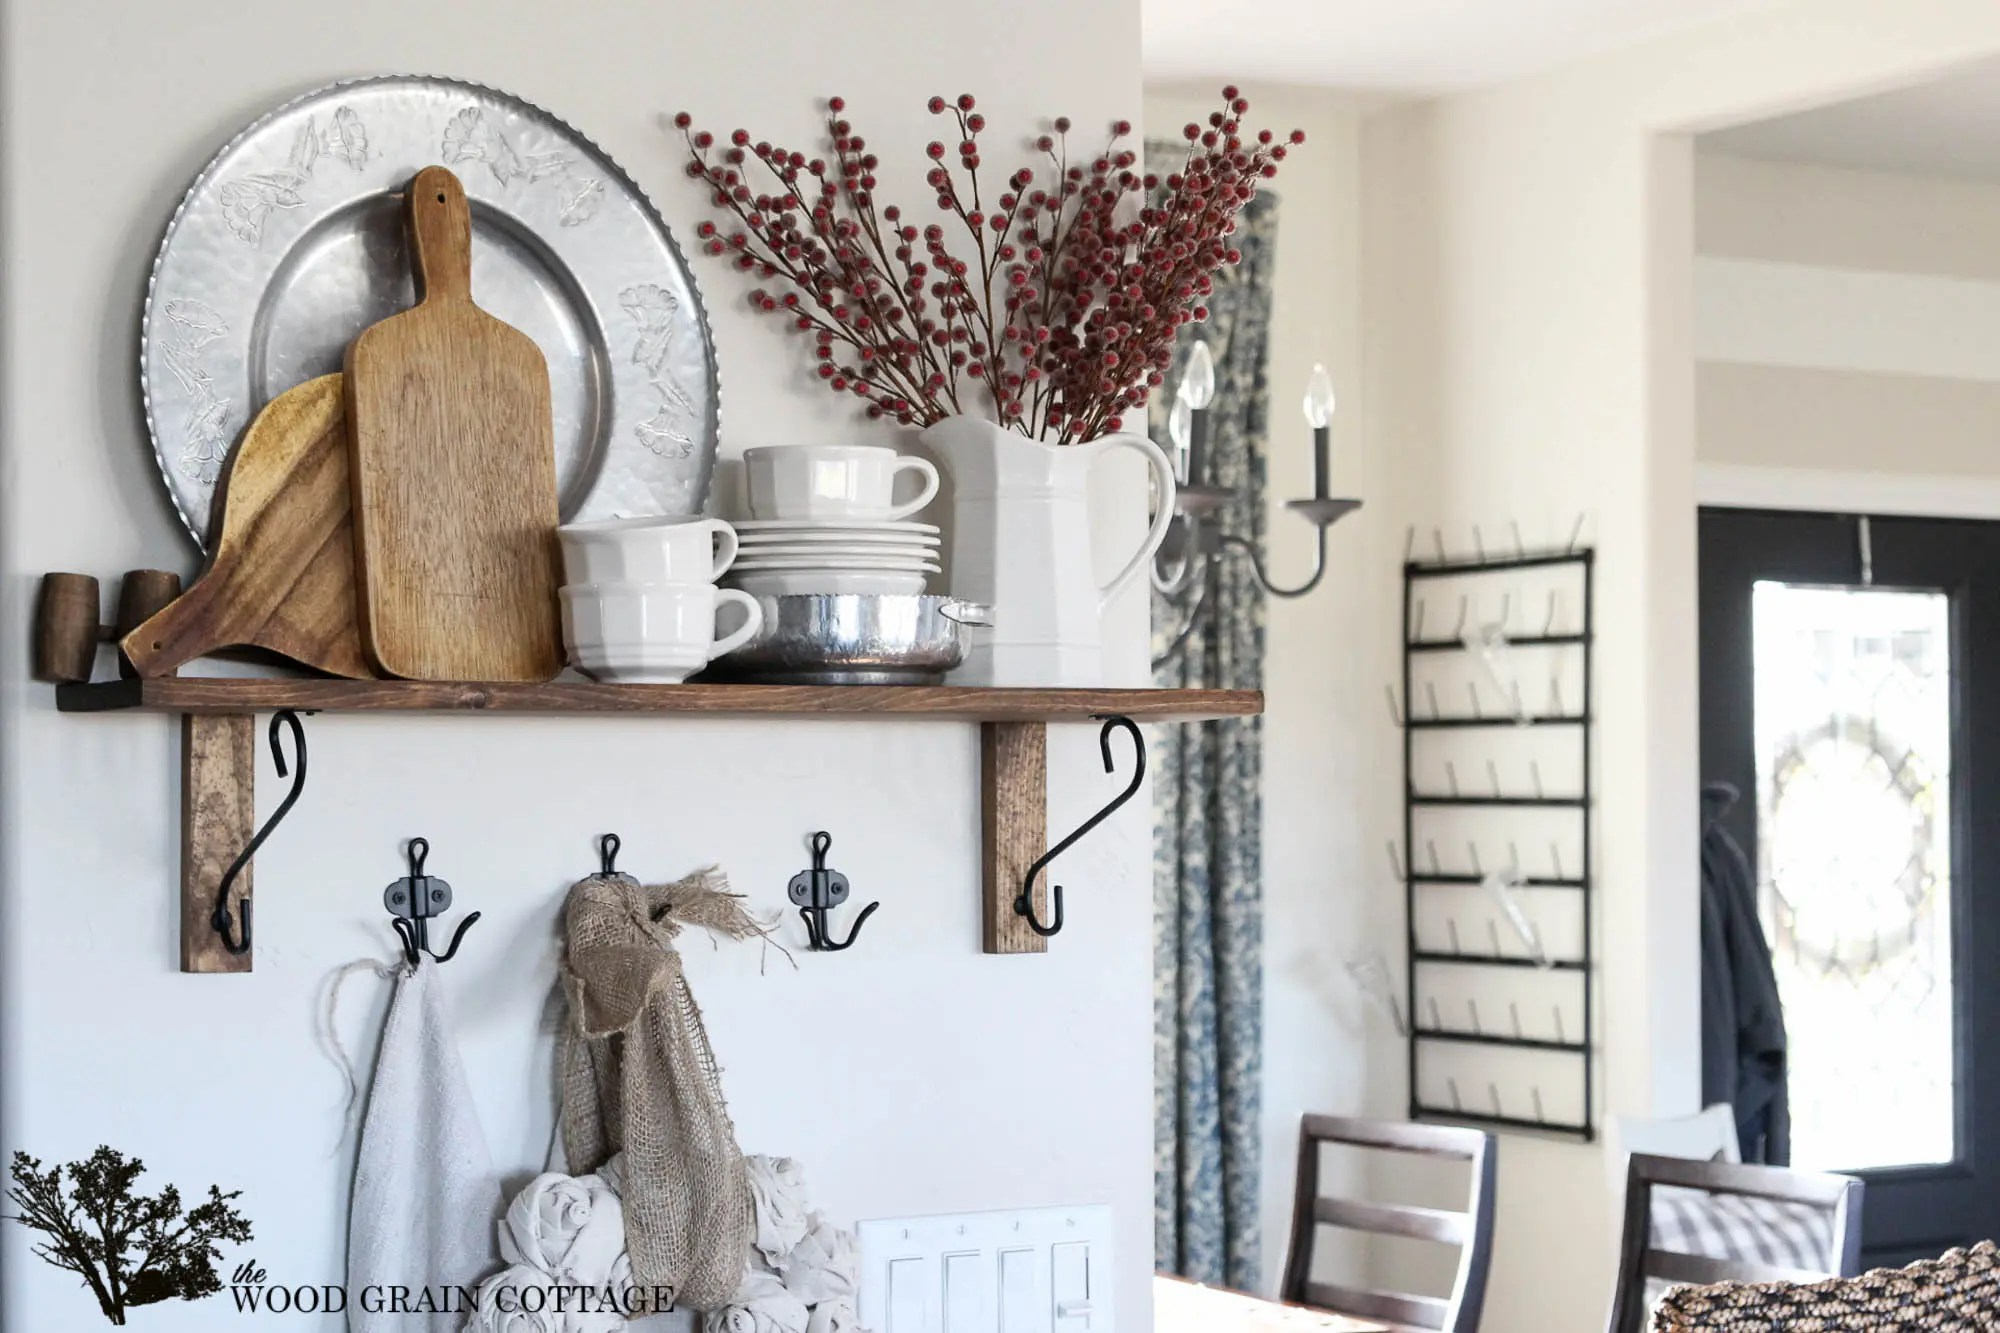 Outstanding Kitchen Shelf Decorating By Wood Grain Cottage Kitchen Shelf Wood Grain Cottage Home Decor Wall Shelving Ideas Home Decor Shelving Ideas home decor Home Decor Shelving